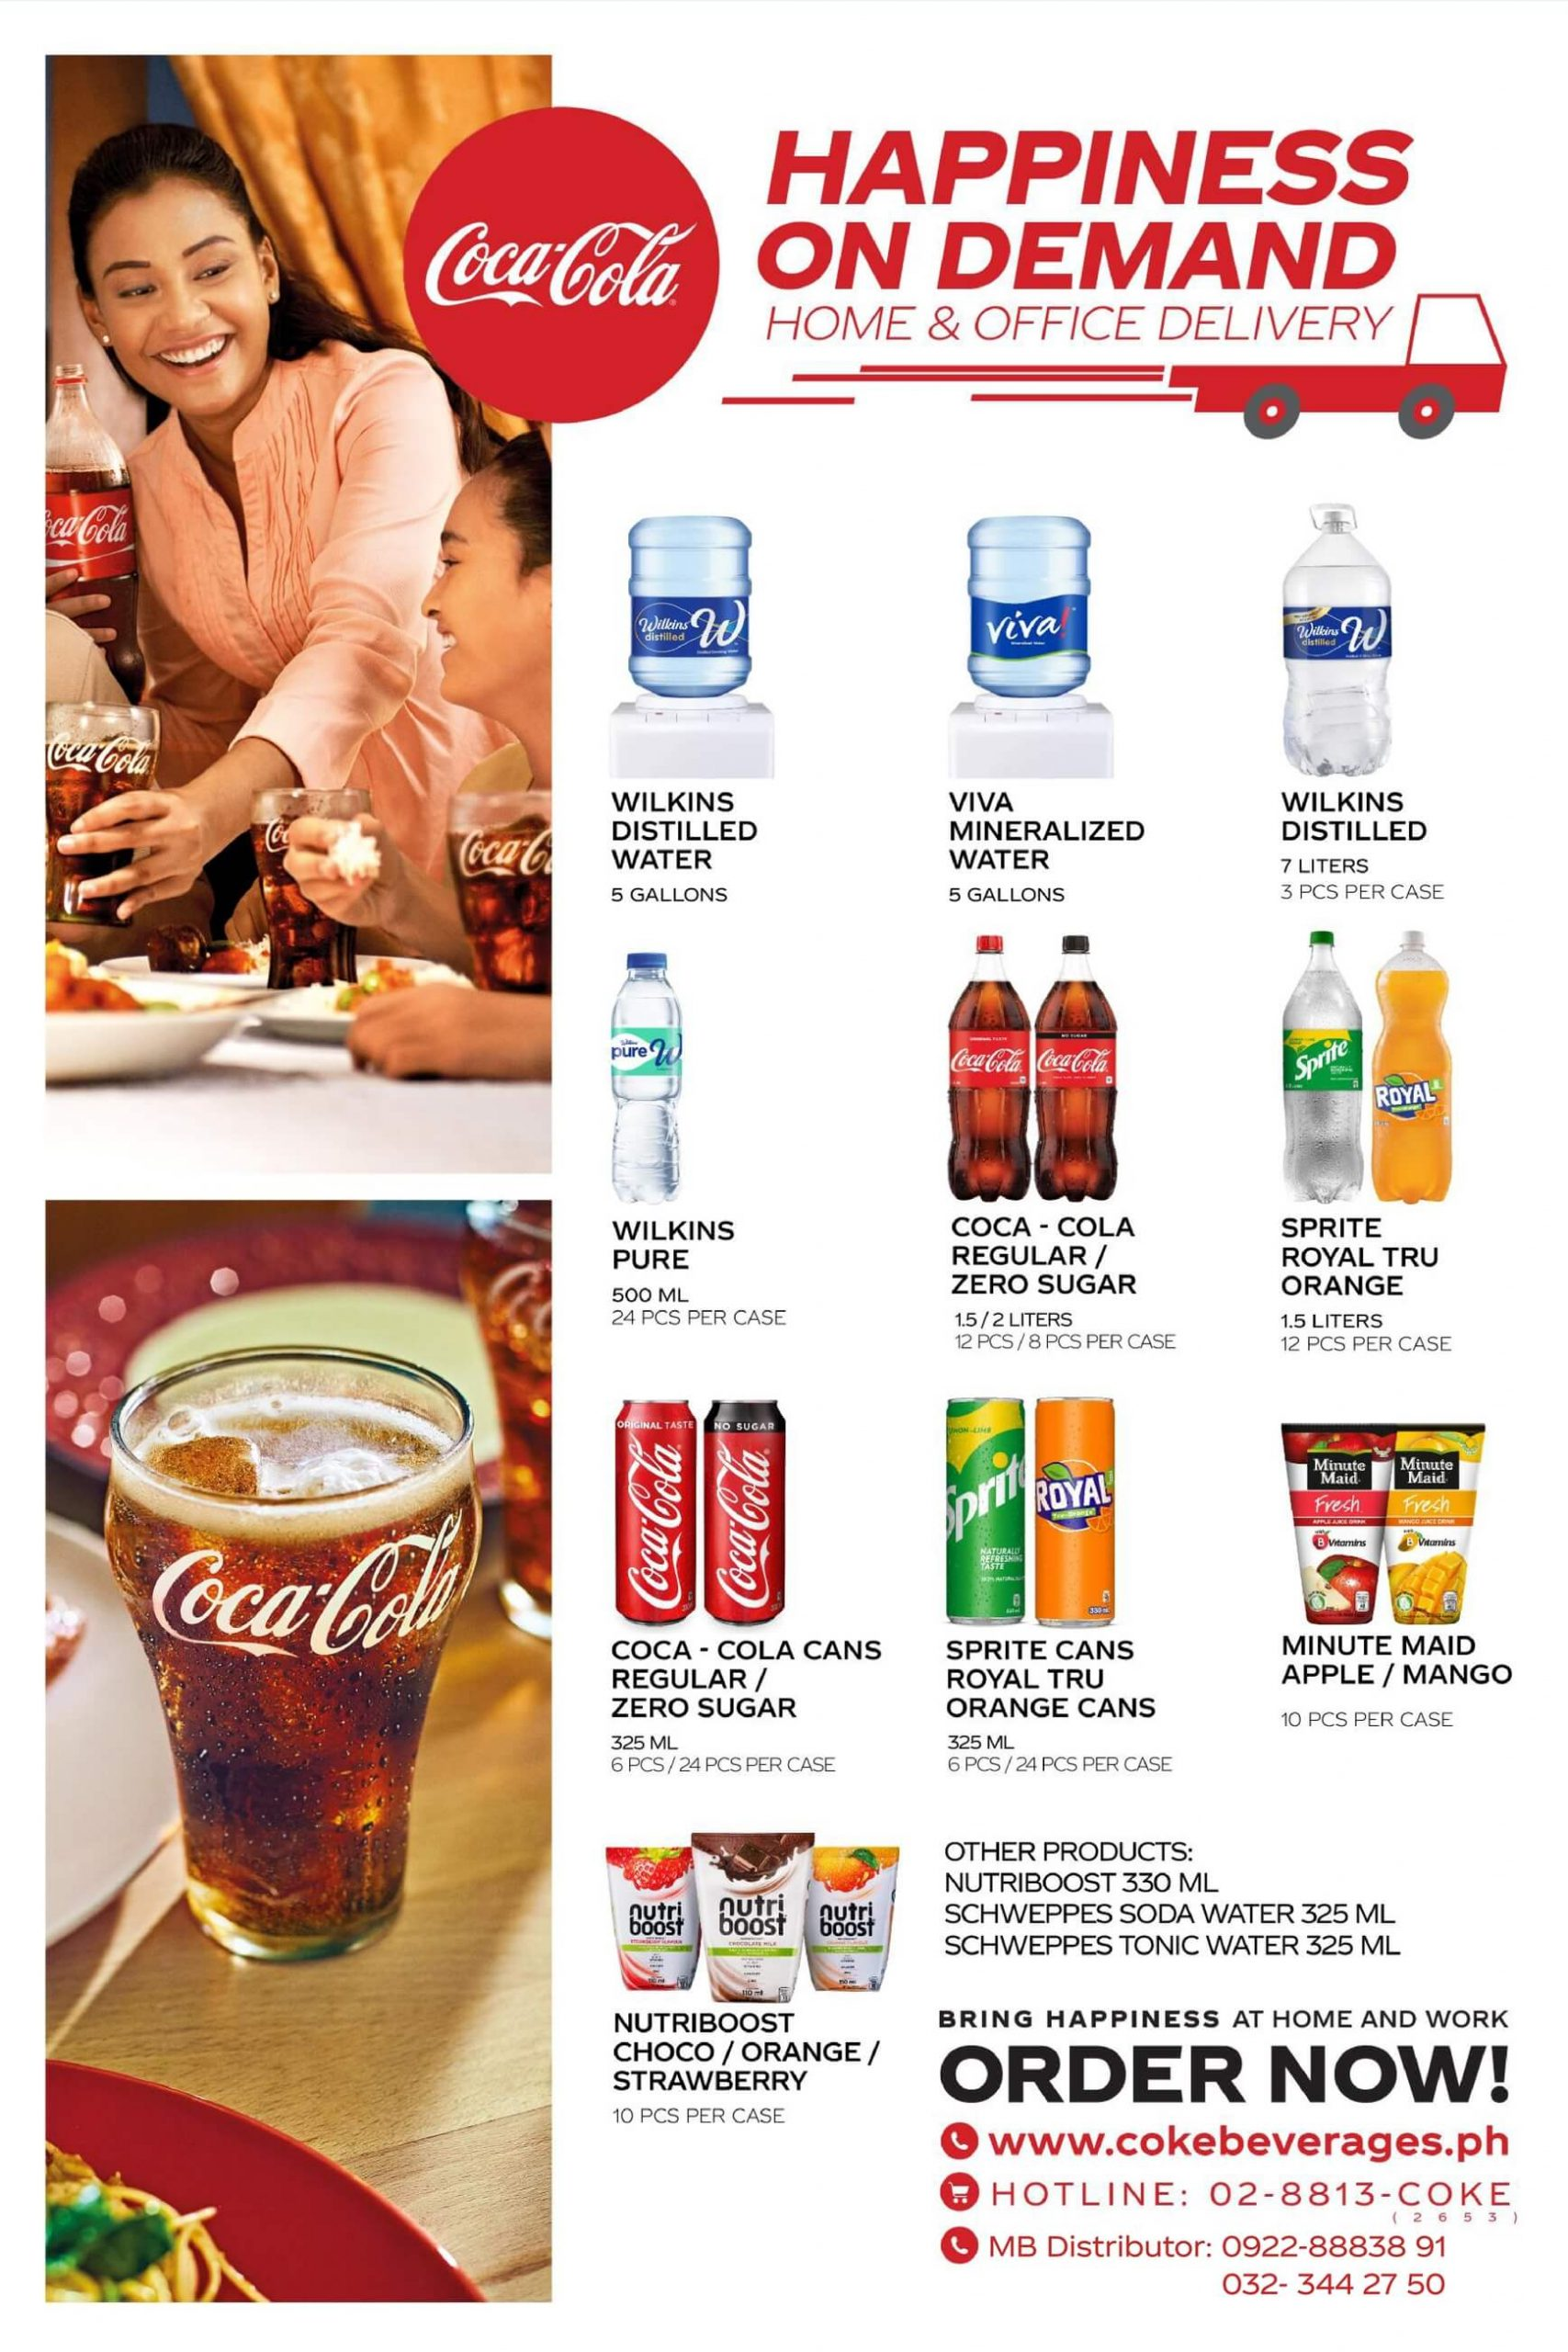 Happiness on Demand Delivery Cebu Poster